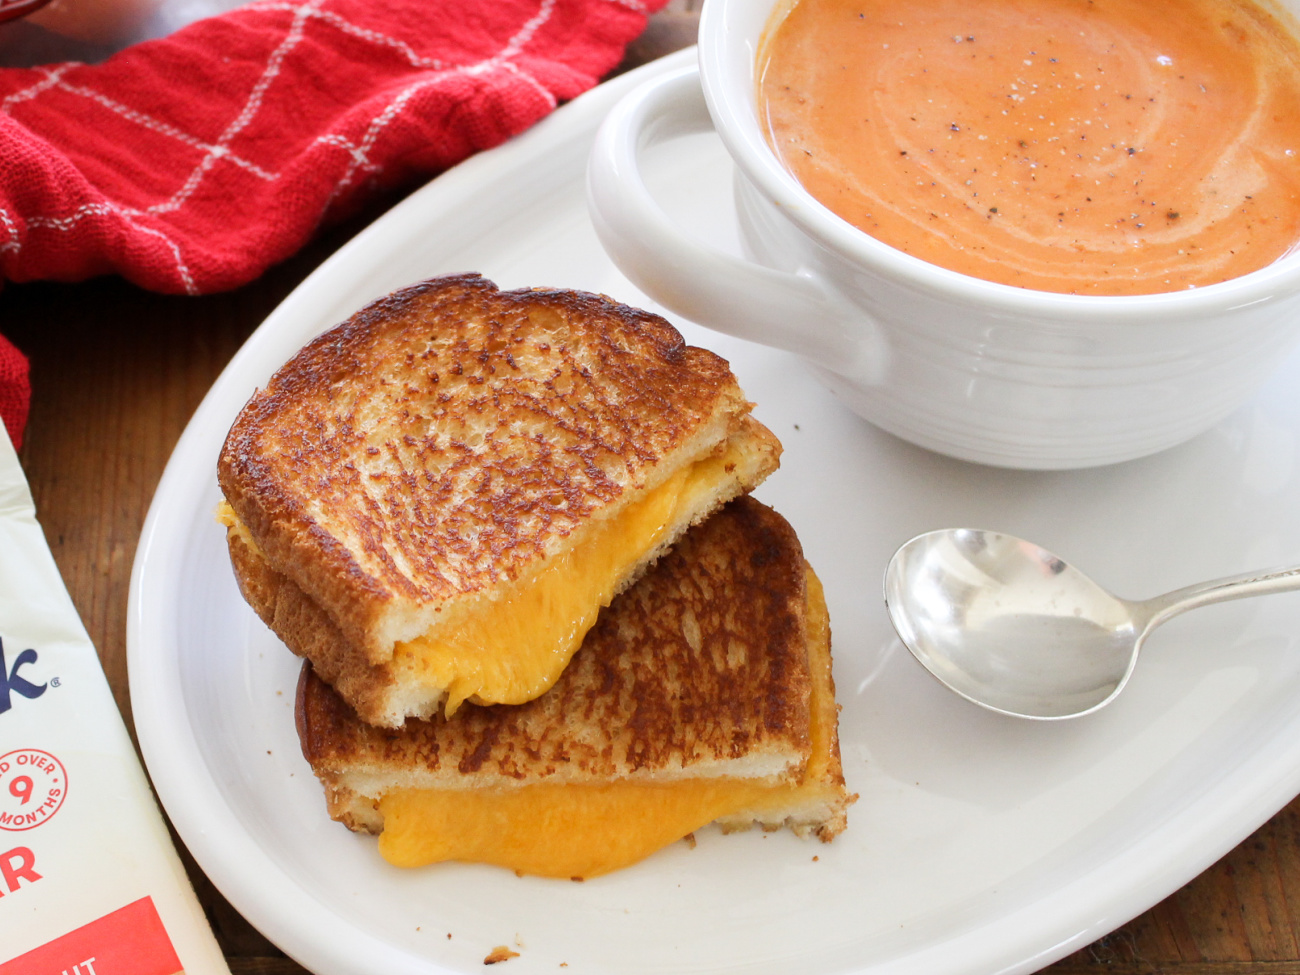 Serve Up A Delicious Grilled Cheese Sandwich With Big Savings On Tillamook Cheese At Publix on I Heart Publix 1